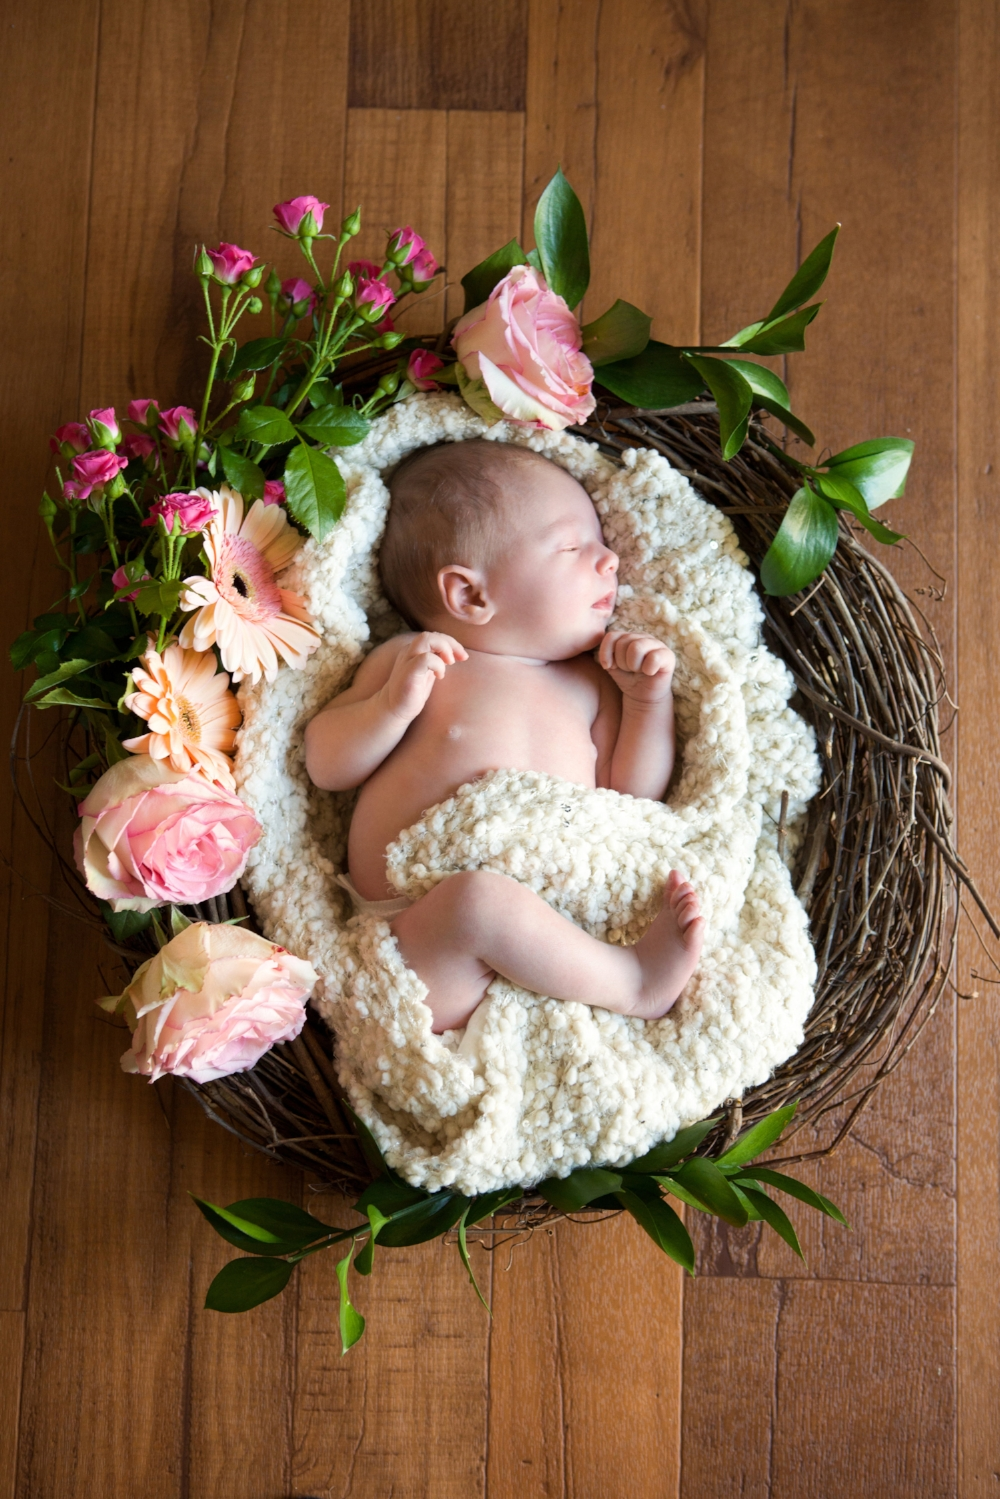 val-westover-photography-newborn